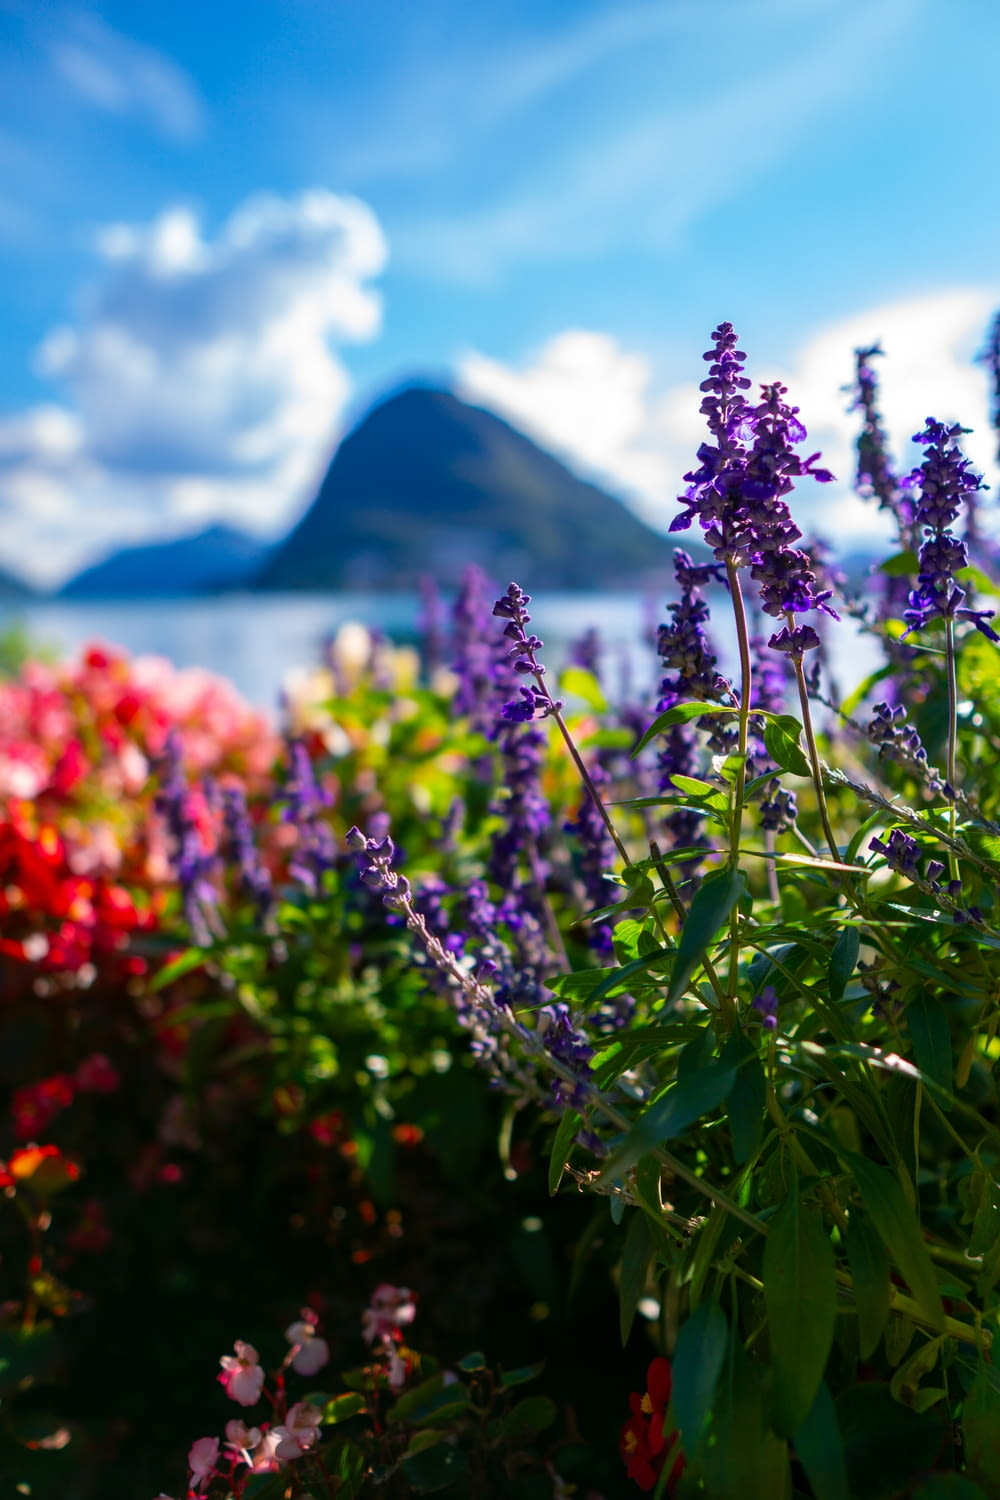 purple flowers near body of water during daytime